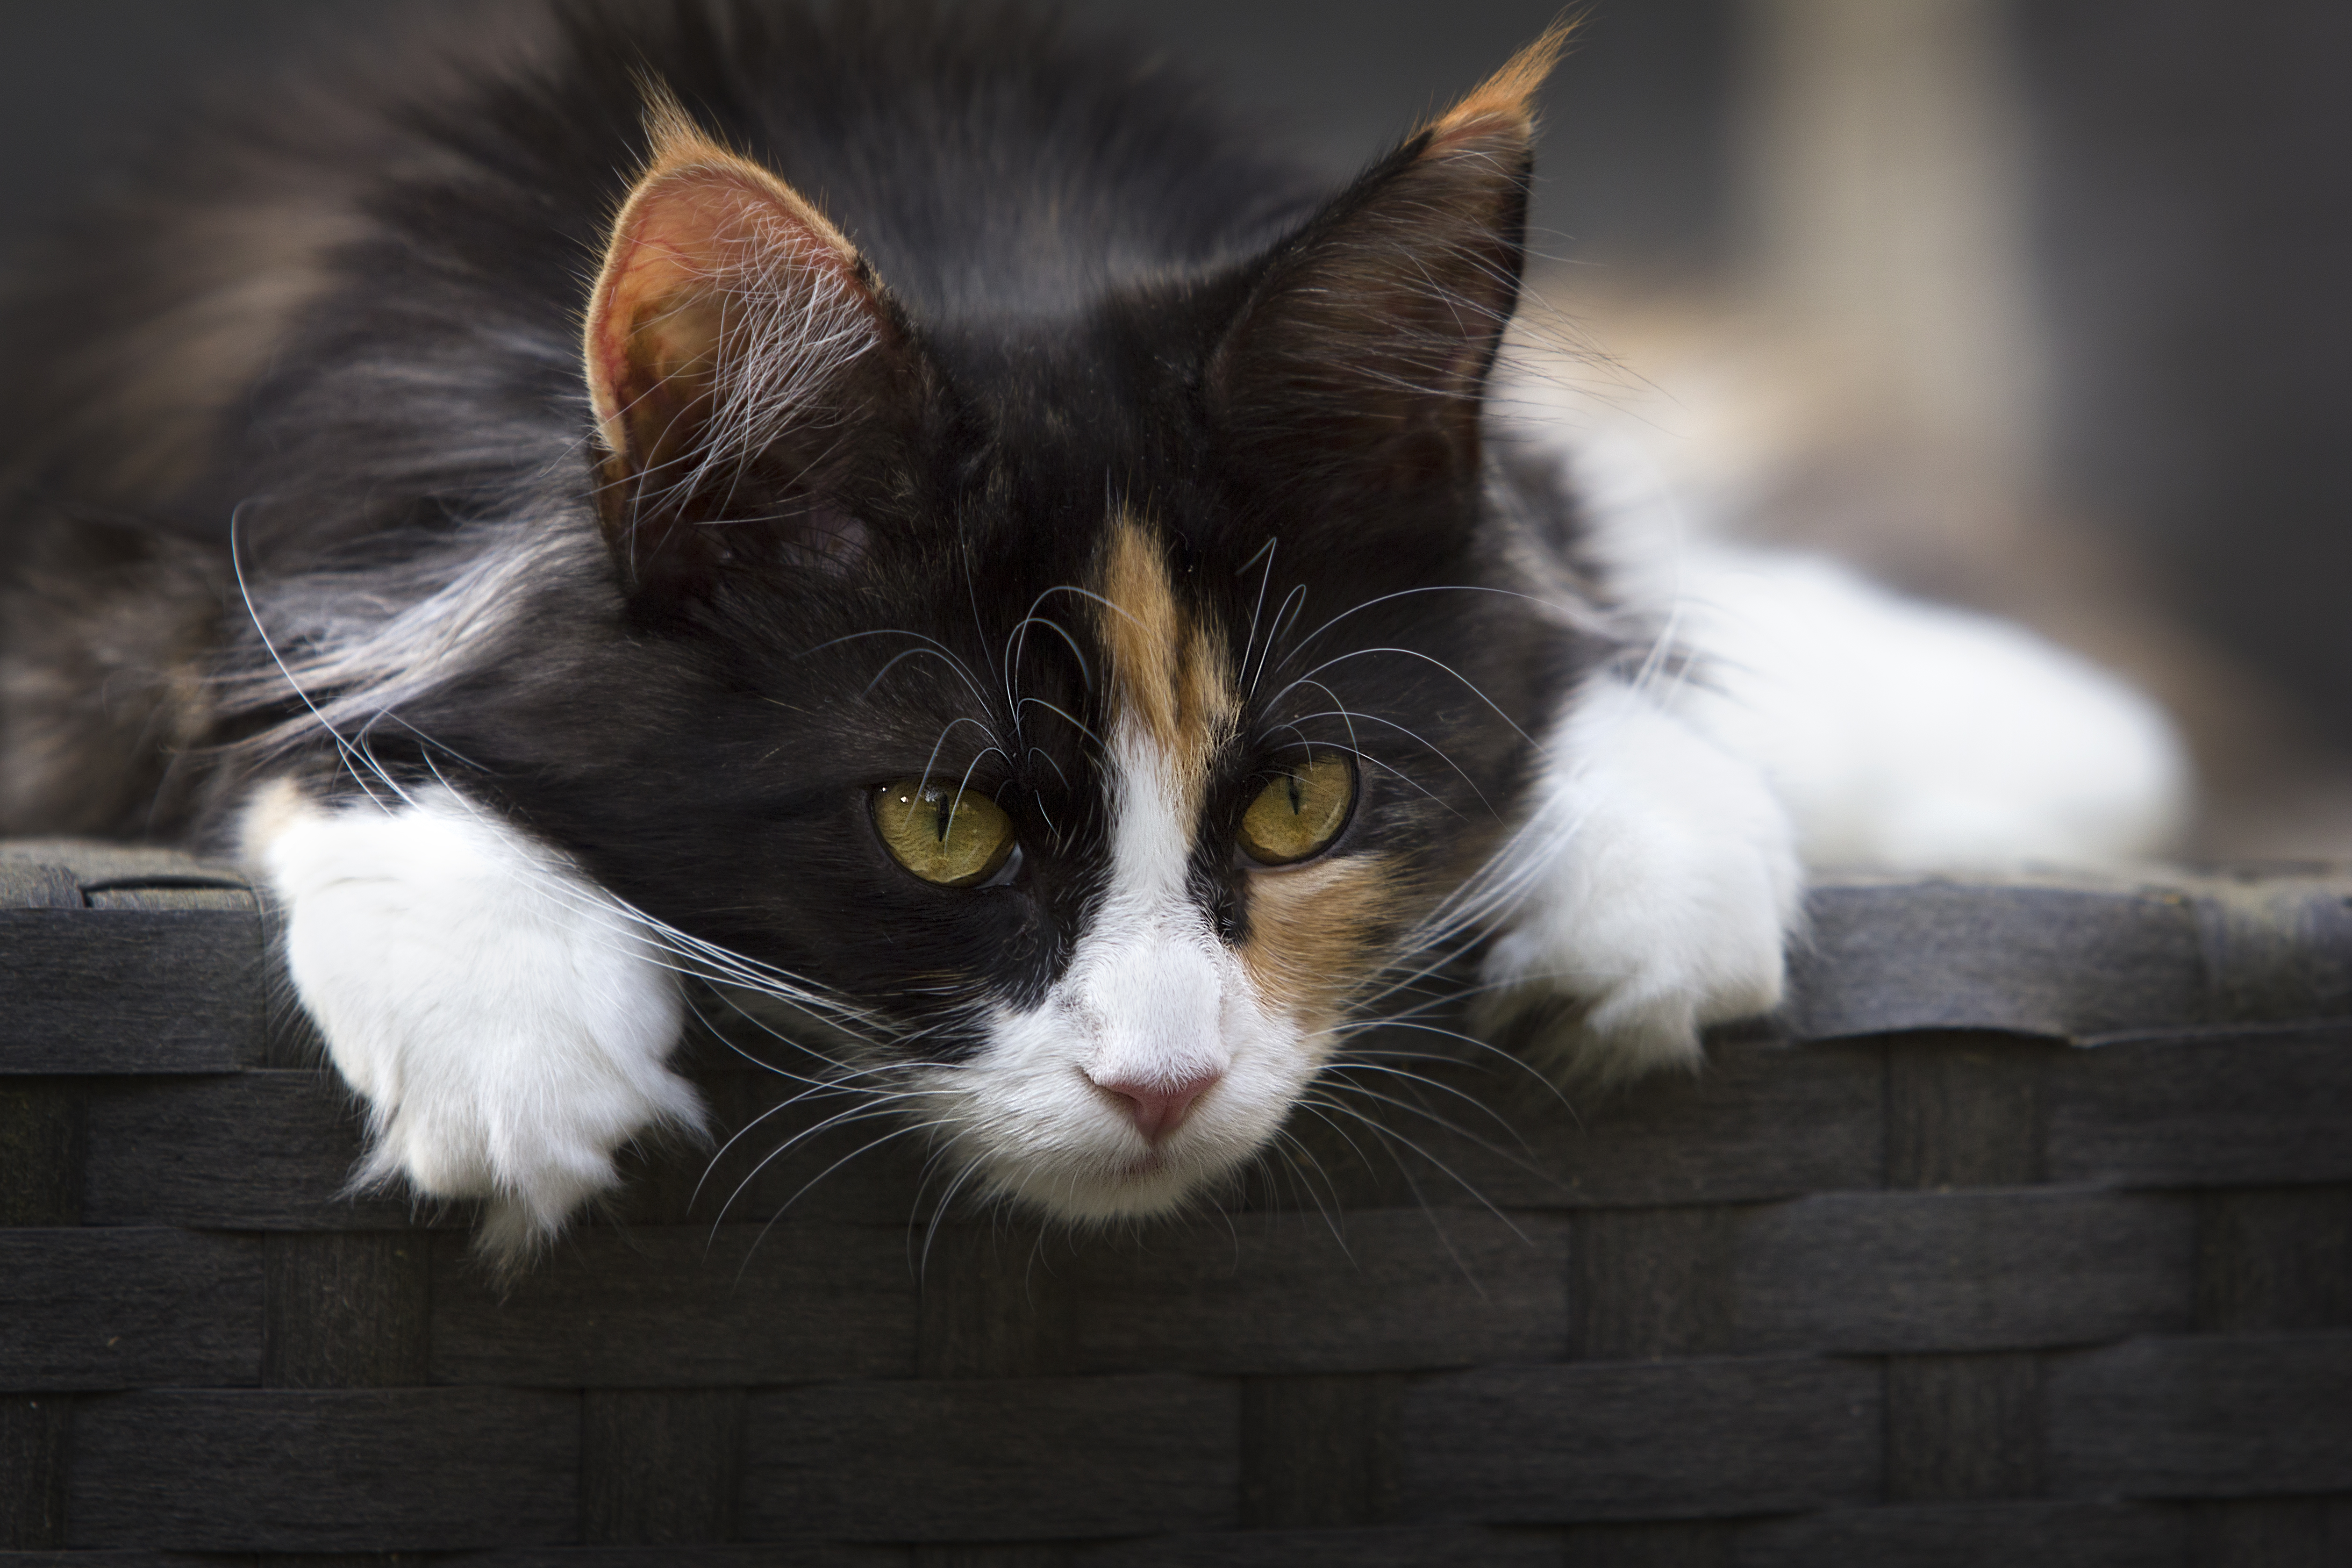 High Definition Animal Wallpapers Calico Cat On Gray Concrete Stair 183 Free Stock Photo